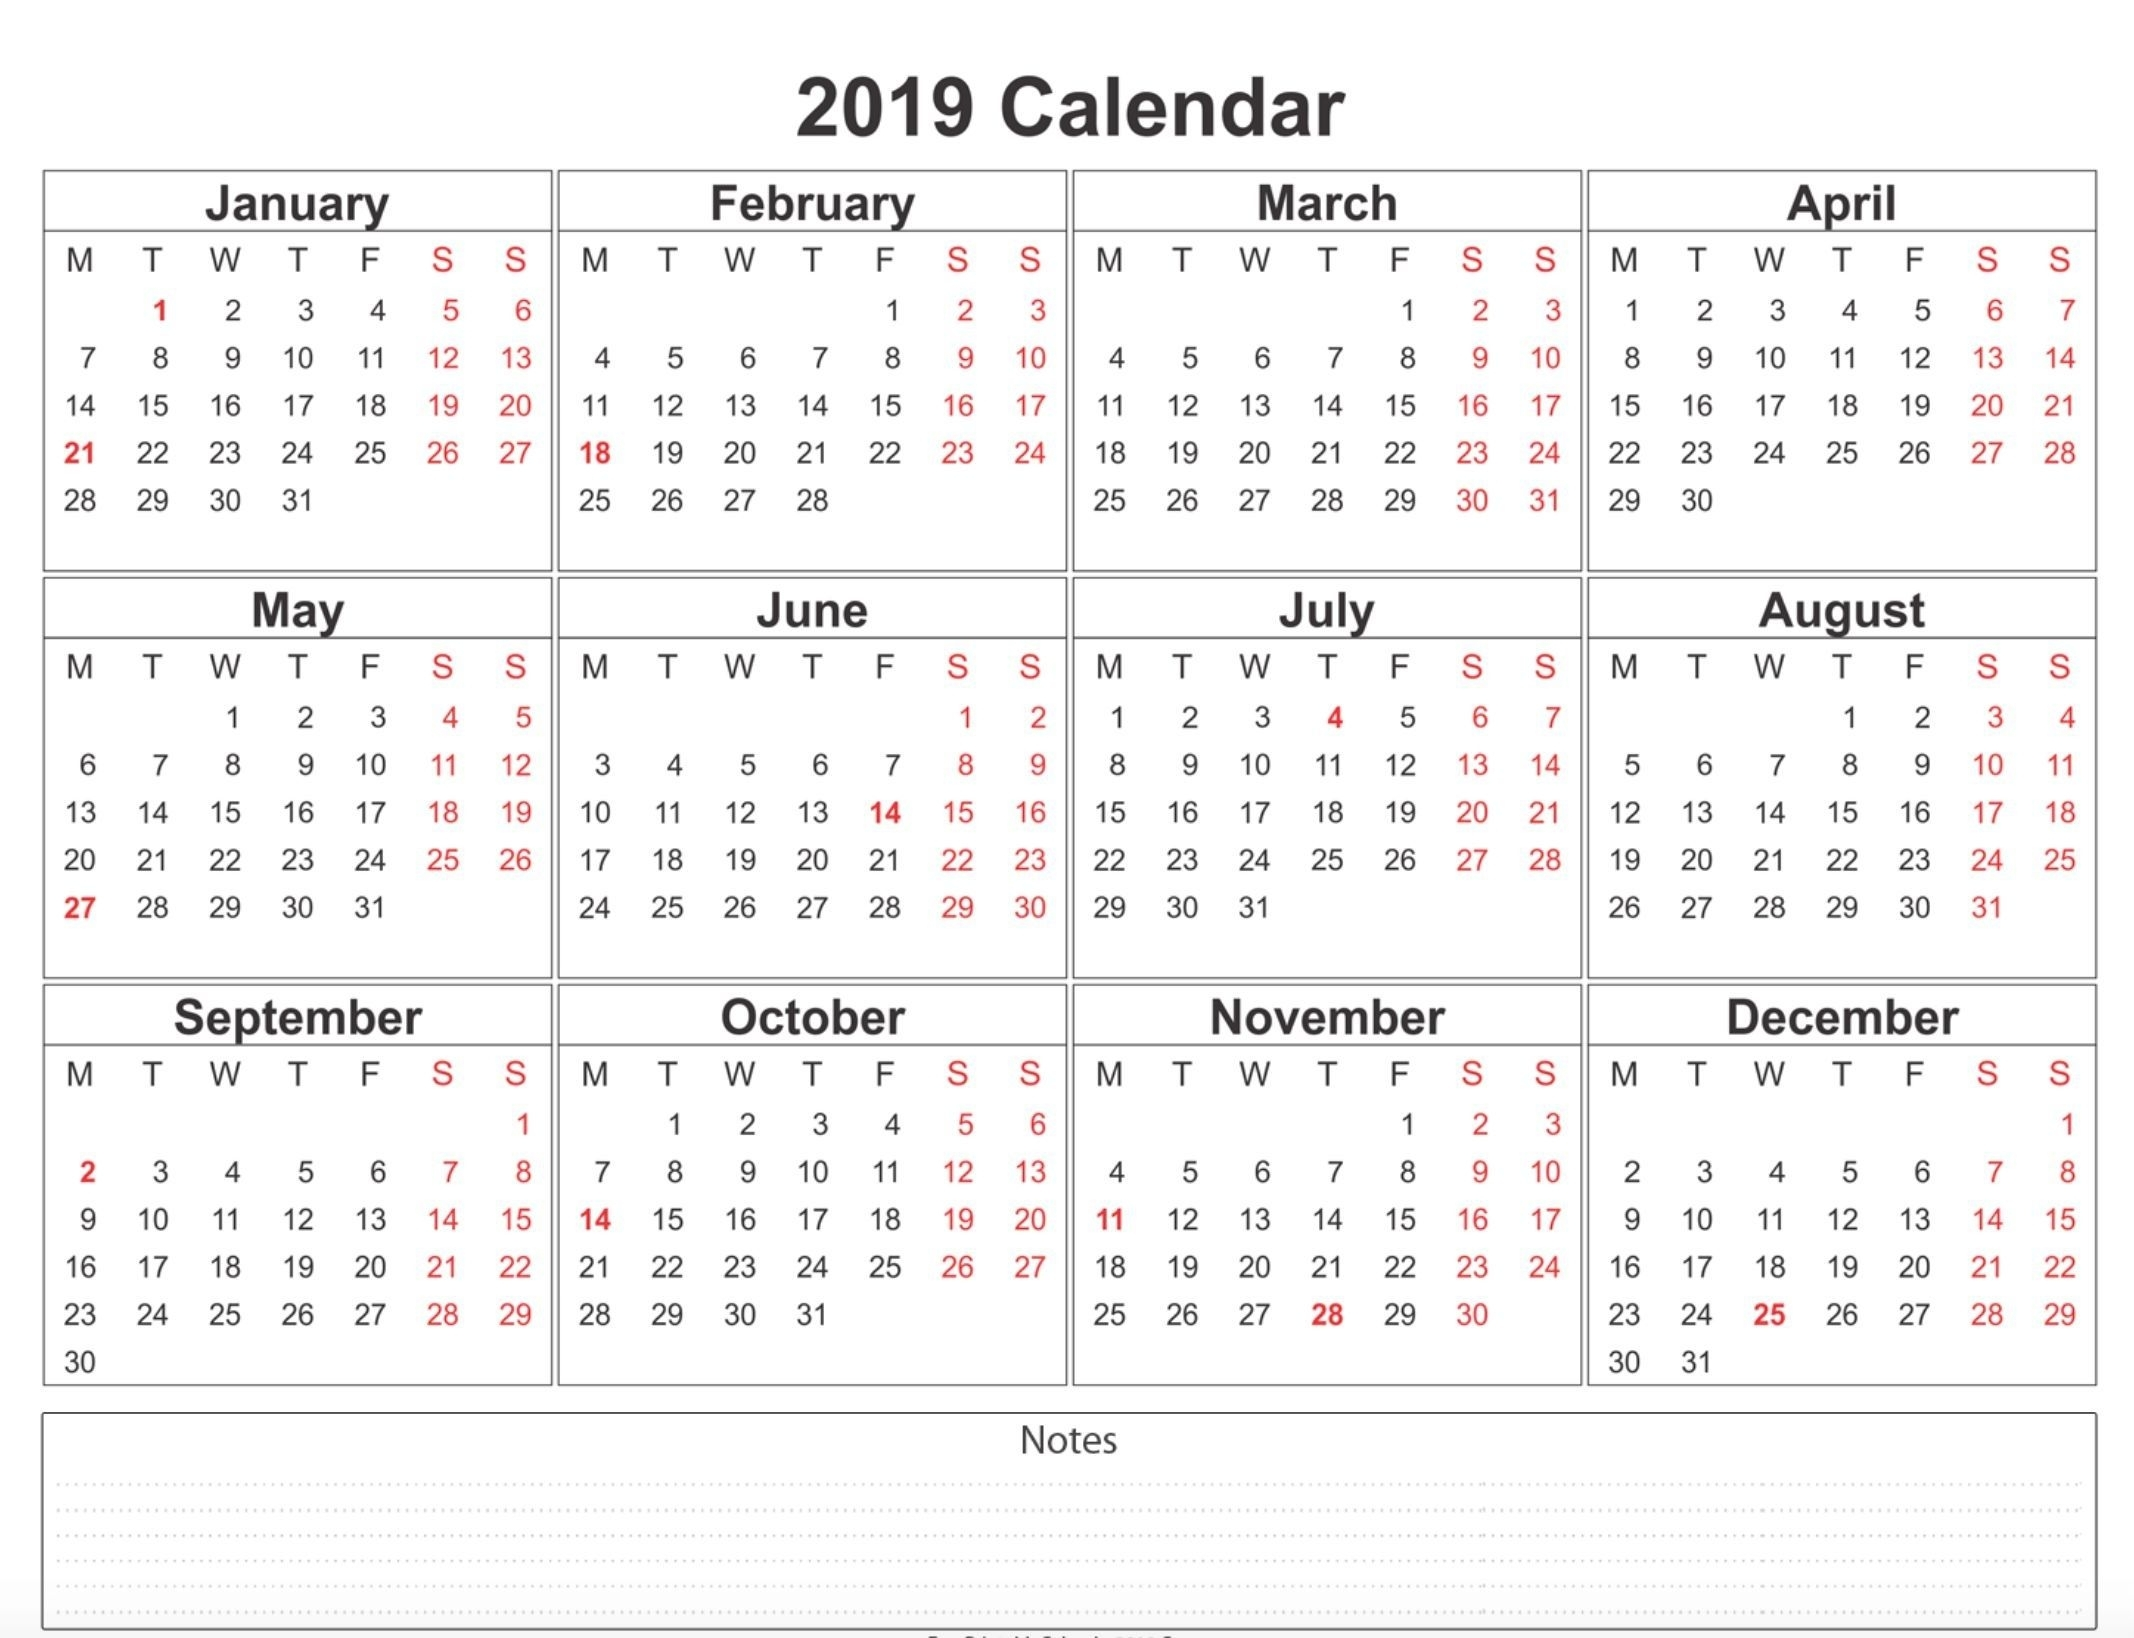 2019 Weekly Calendar Printable | 2019 Calendars | 12 Month Calendar within 12 Month Calendar Printable Free